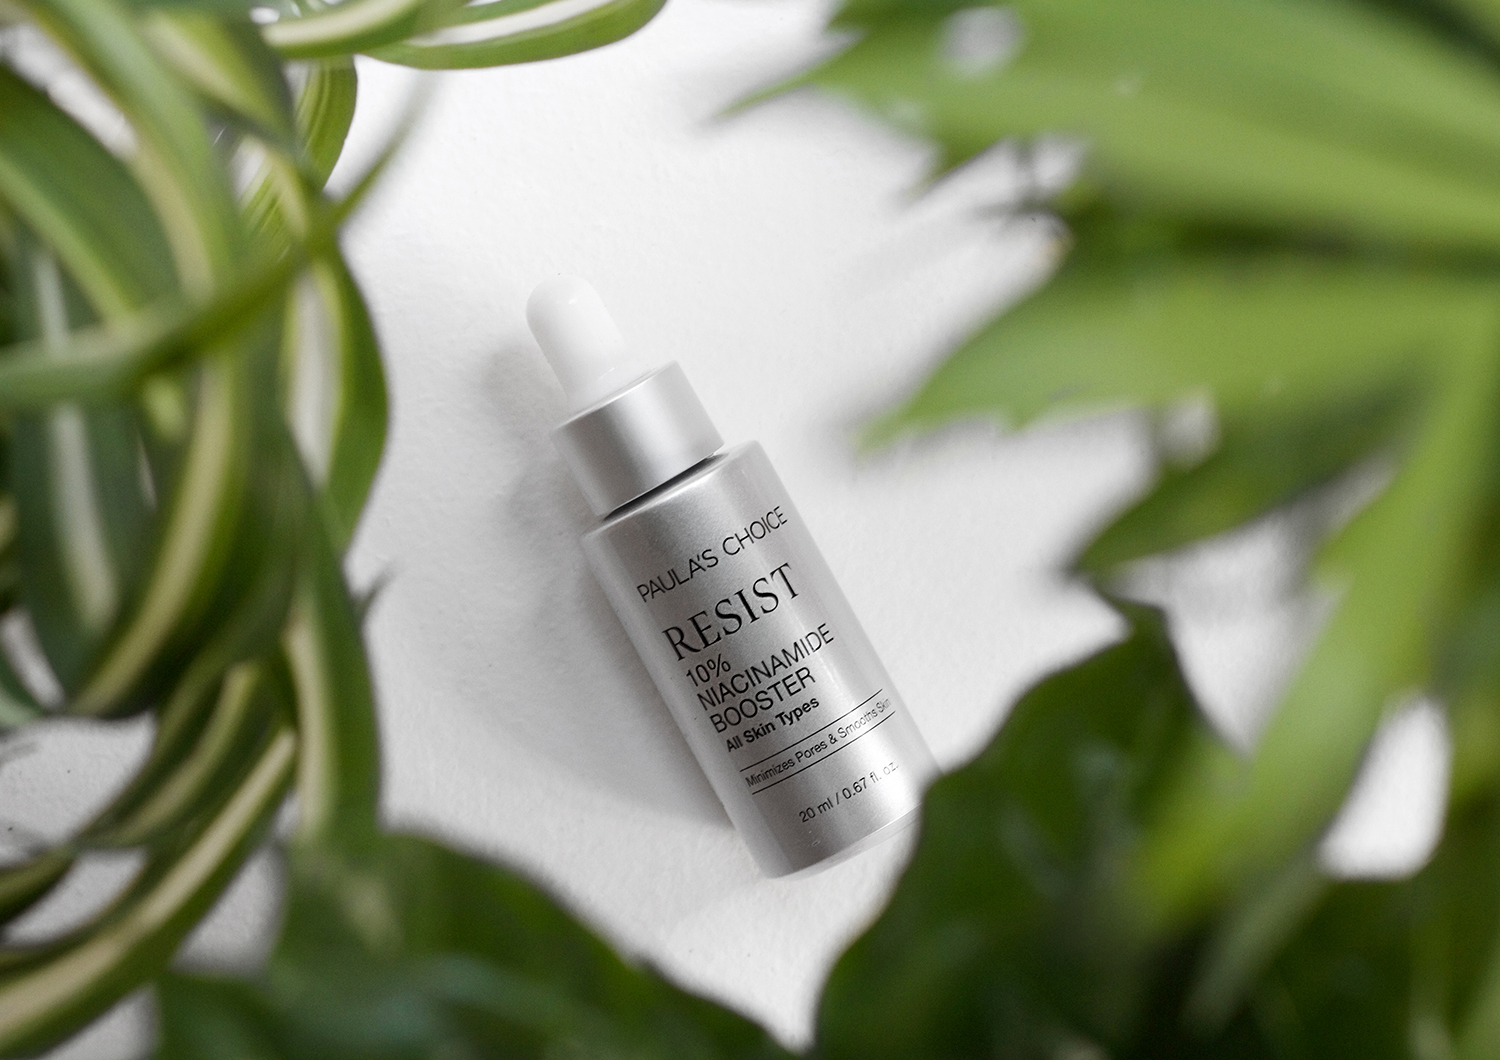 georgmallner_paulaschoice_skincare_beauty_beautyproduct_hyaluron_niacinamide_booster_hyaluronicacid_booster_salicylic-acid_paulabegoun_antiaging_botox_2